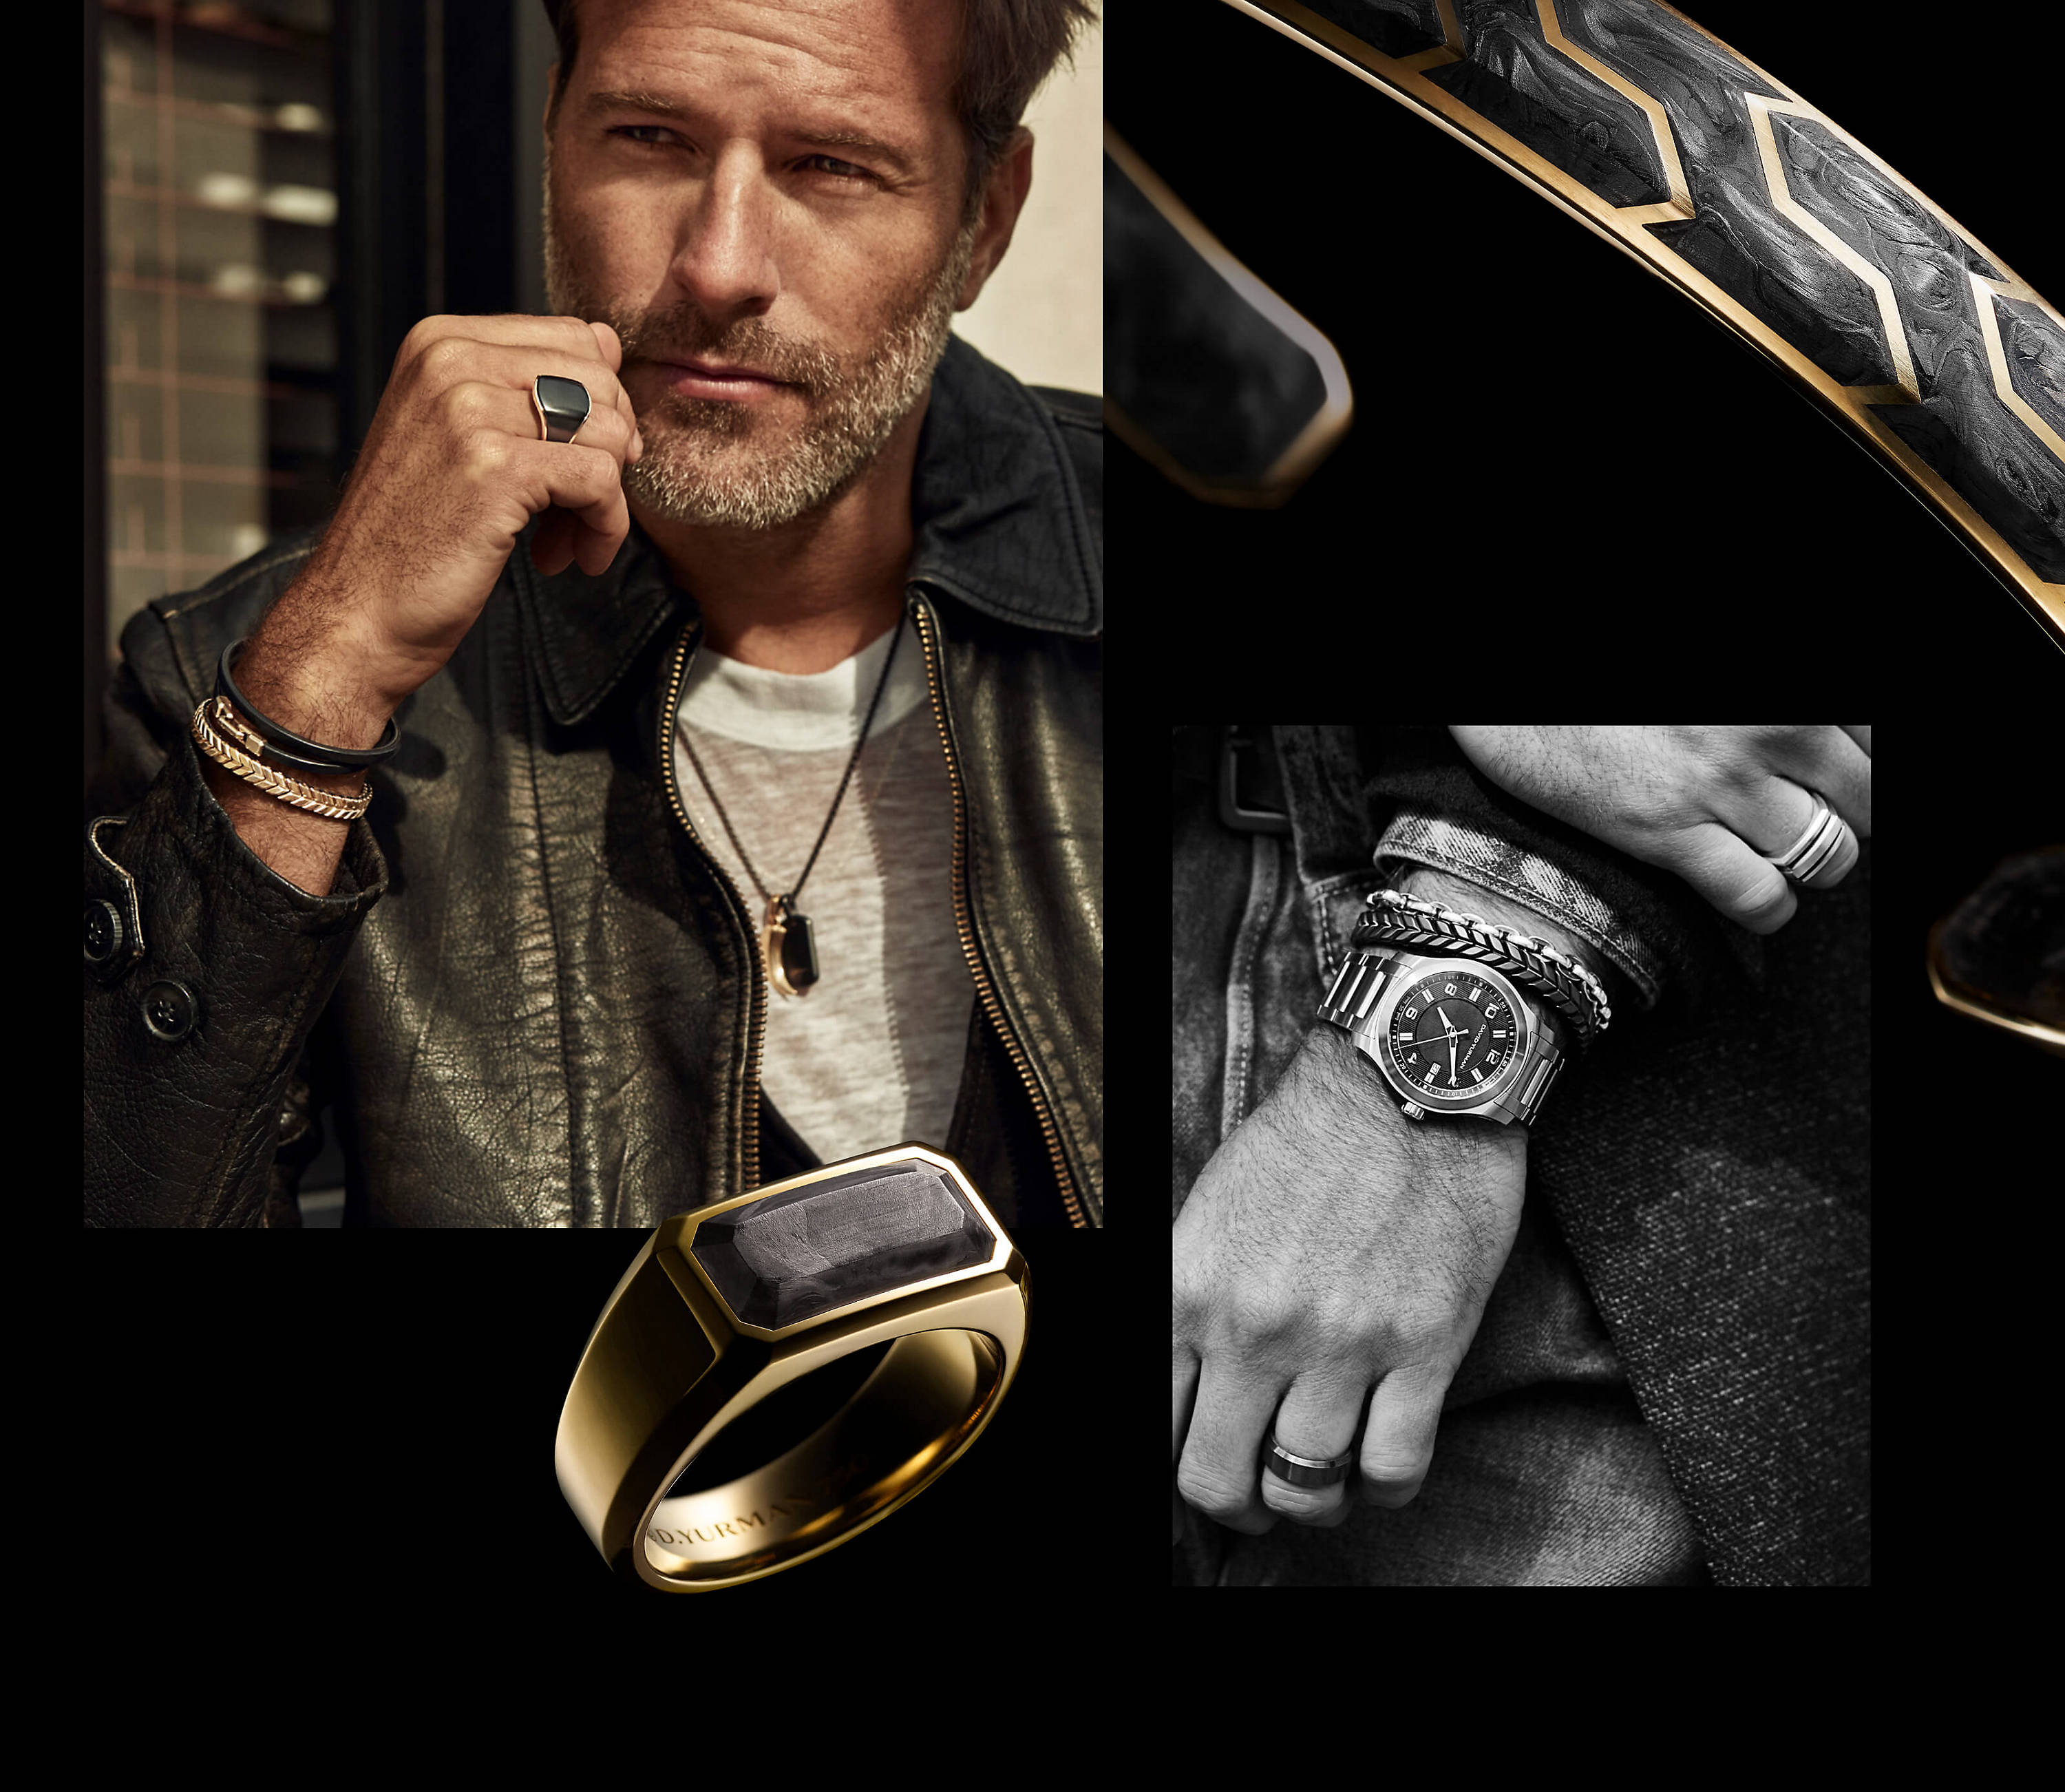 A photo shows four images arranged in a collage grid. In the upper left quadrant is a color photo of a man standing outside in the sun in front of a beige wall and window. He is wearing a black leather jacket, a white crewneck t-shirt, and David Yurman men's jewelry. His right hand is gently curled in front of his face, and he is looking to the left of the camera with a pensive expression. He is a wearing a Chevron bracelet in 18K yellow gold, a Streamline wrap bracelet in black leather with 18K yellow gold, a Streamline signet ring in 18K yellow gold with black titanium, and a darkened stainless-steel Chain necklace with two pendants on the necklace. The pendants include a Roman claw amulet in 18K yellow gold and a Streamline tag in black titanium. In the upper right quadrant is a close-up color photo of a Forged Carbon cuff bracelet in 18K yellow gold that is partially covered in light and shadow. In the lower right quadrant is a close-up black-and-white photo of a man's left hand and wrist, with his right hand folded around his left arm above the wrist. He is wearing jeans, a belt, a coat, and a light denim jacket. On his left arm he is wearing a David Yurman men's Beveled band ring, a Revolution watch, a Chevron bracelet, and a Streamline link bracelet. On his right hand he is wearing a Deco signet ring. In the lower left quadrant is a color photo of a David Yurman men's Forged Carbon signet ring in 18K yellow gold standing upright on top of a black surface and covered in light and shadow.